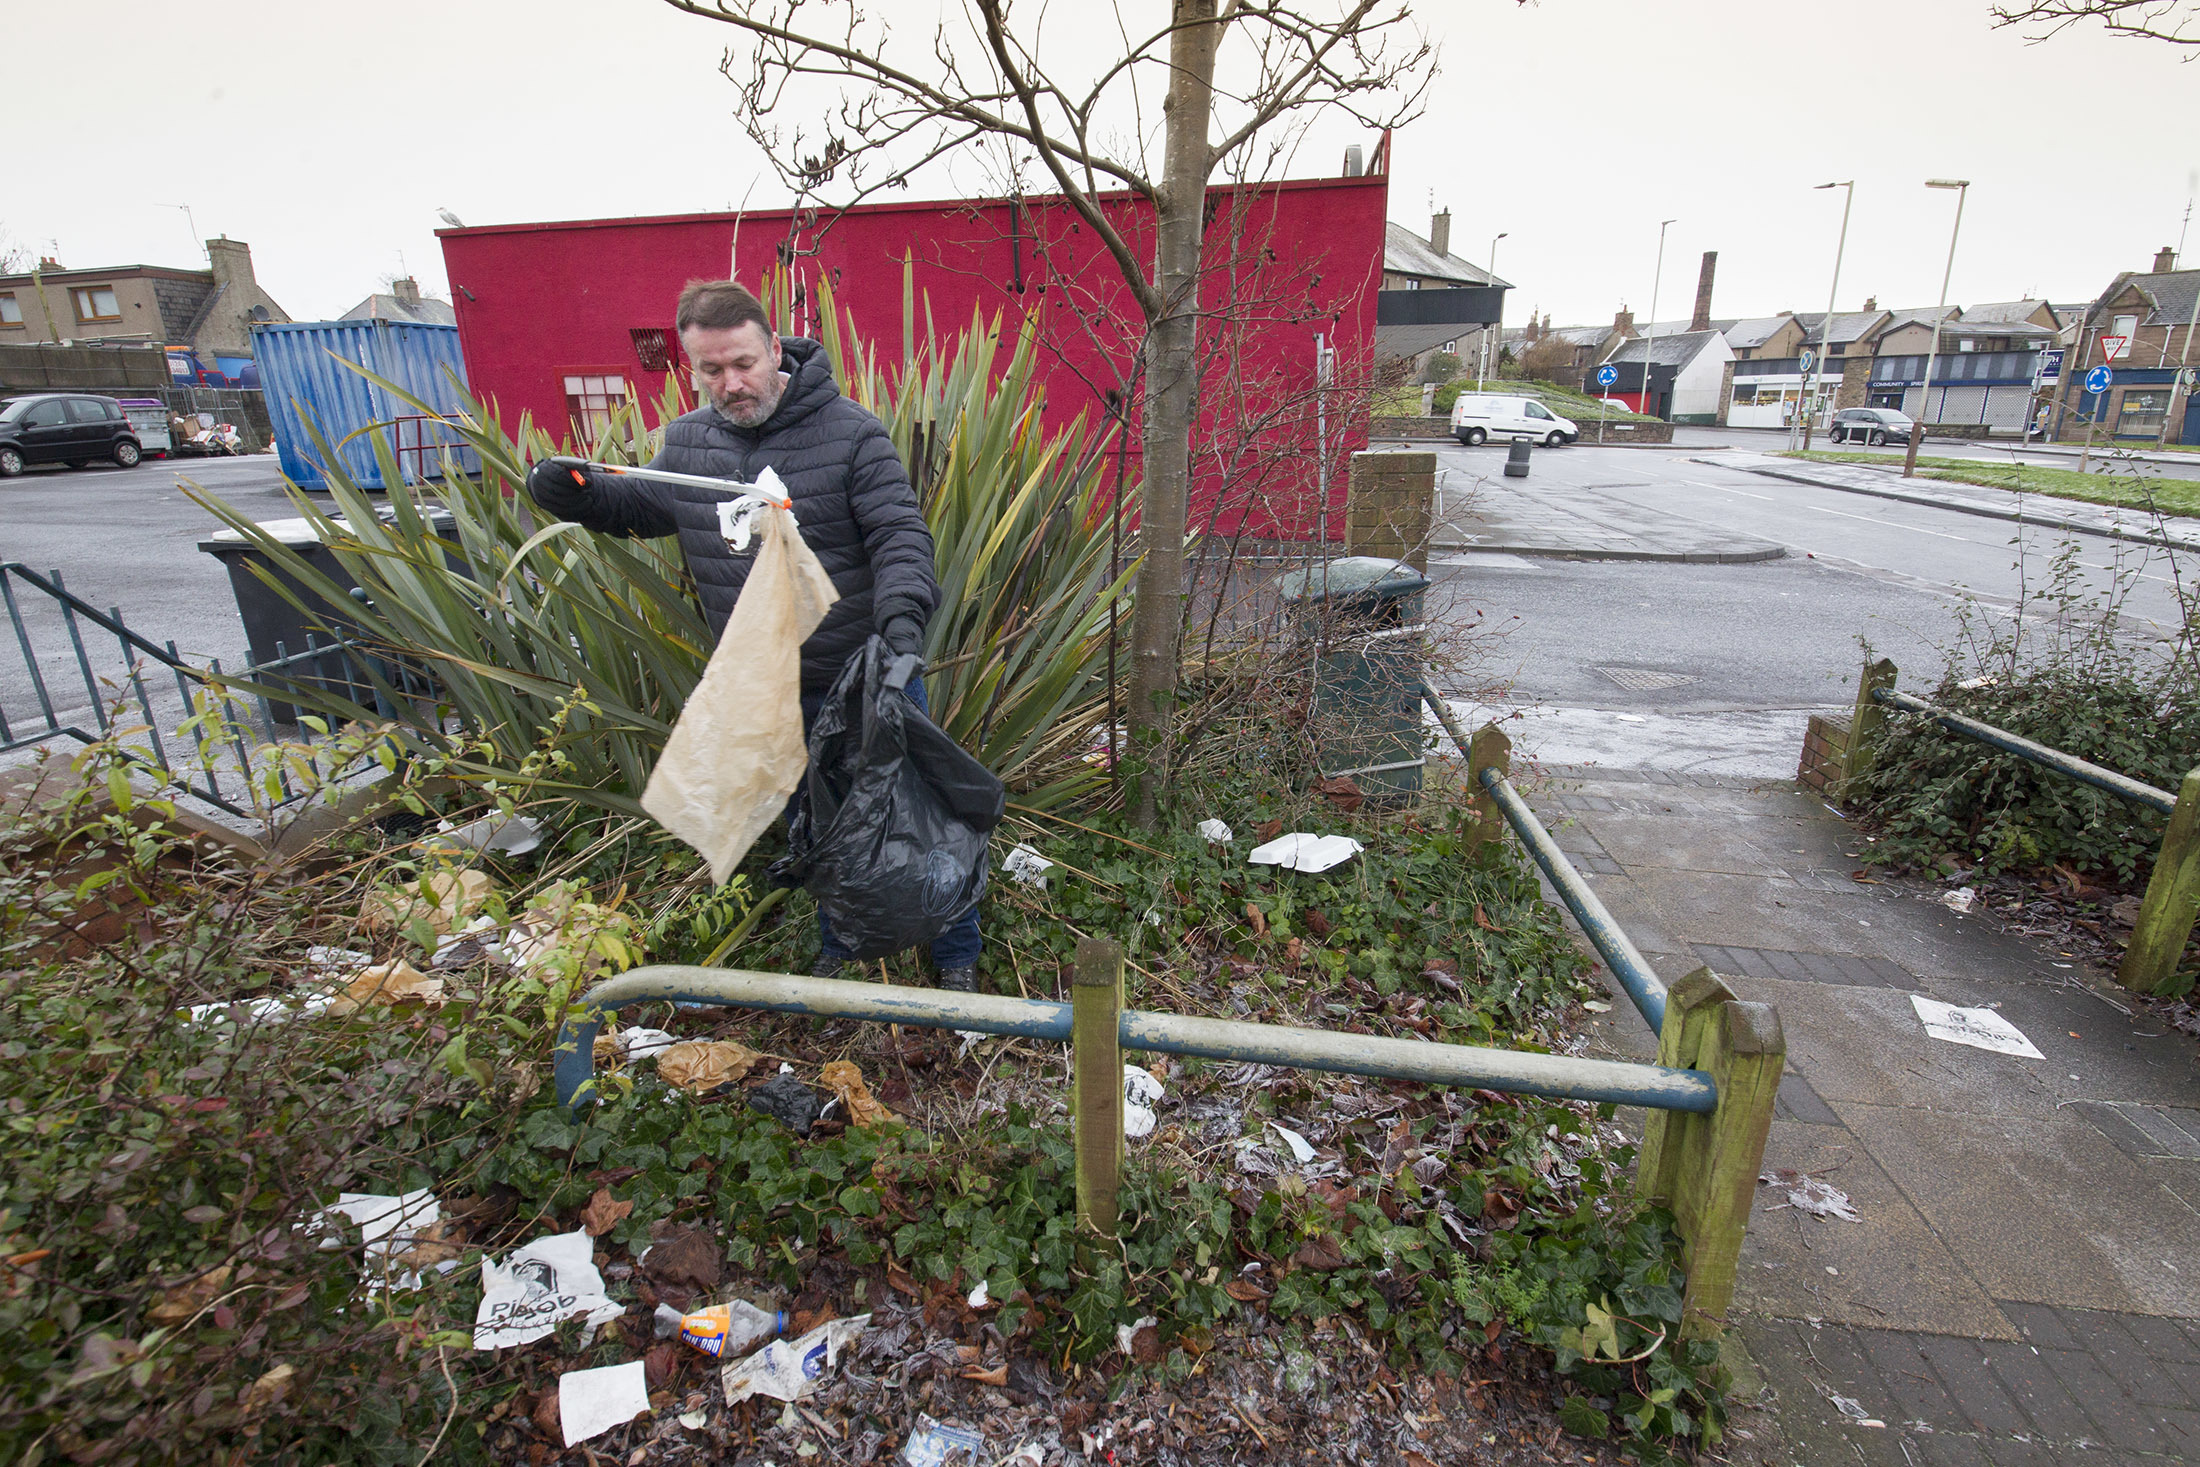 Mr Coutts is a well-known litter crusader in Angus.